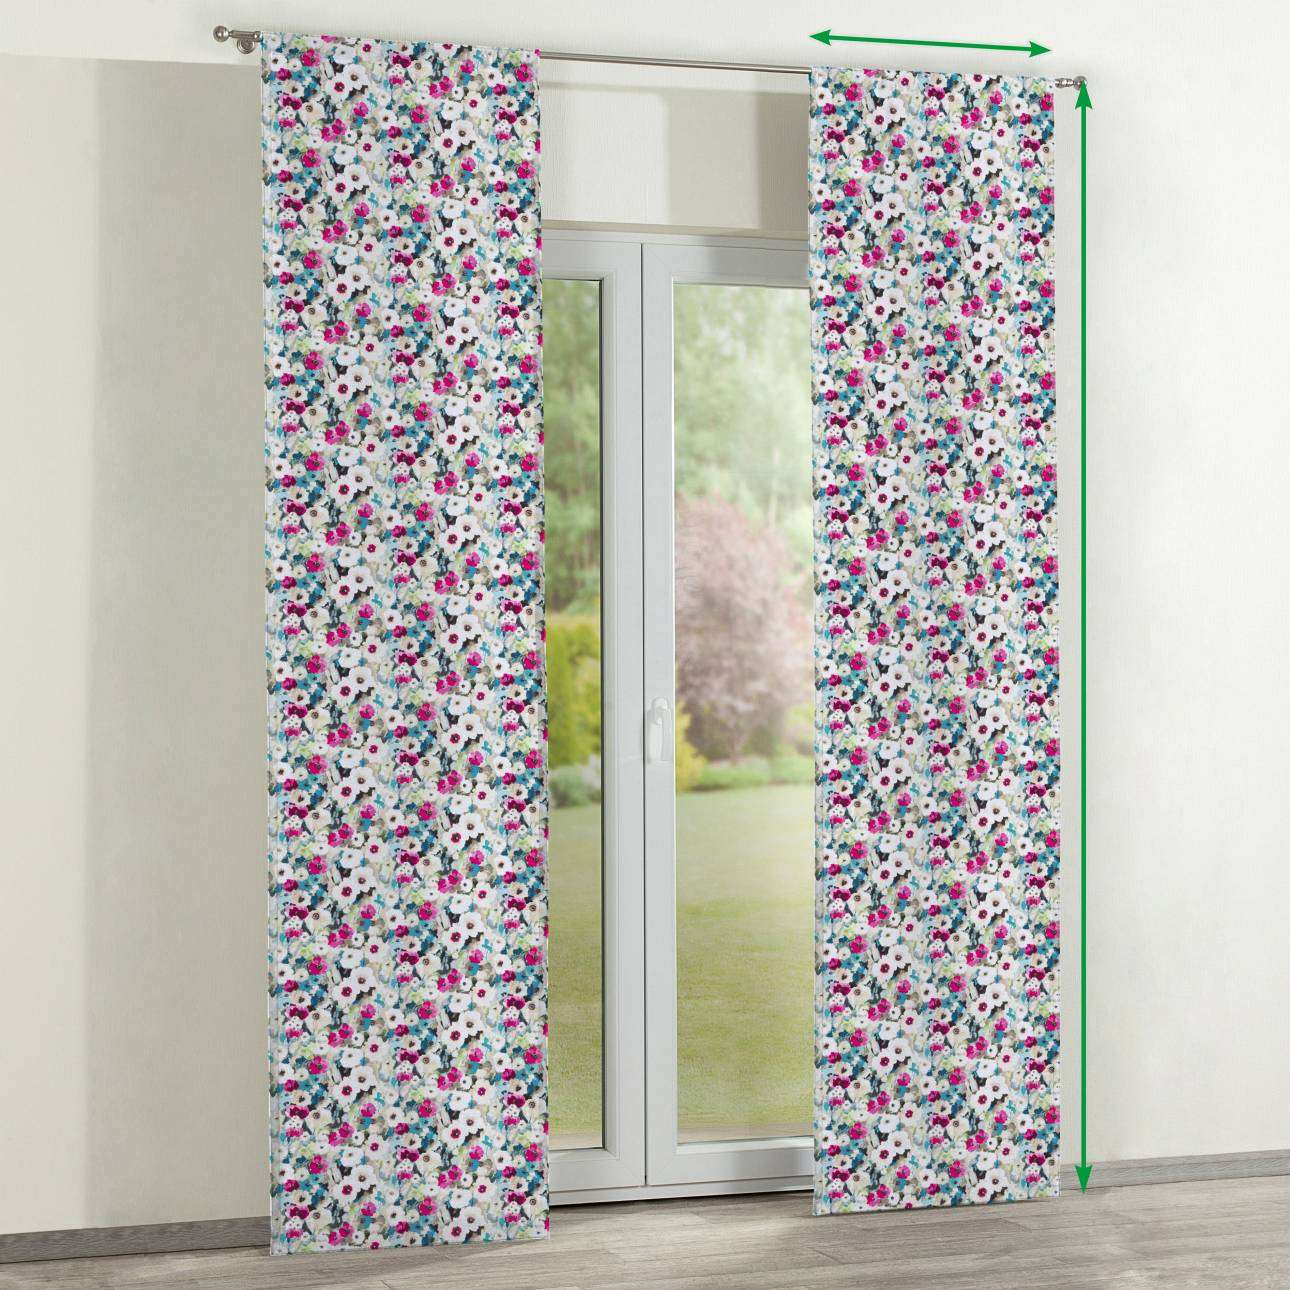 Slot panel curtains – Set of 2 in collection Monet, fabric: 140-10